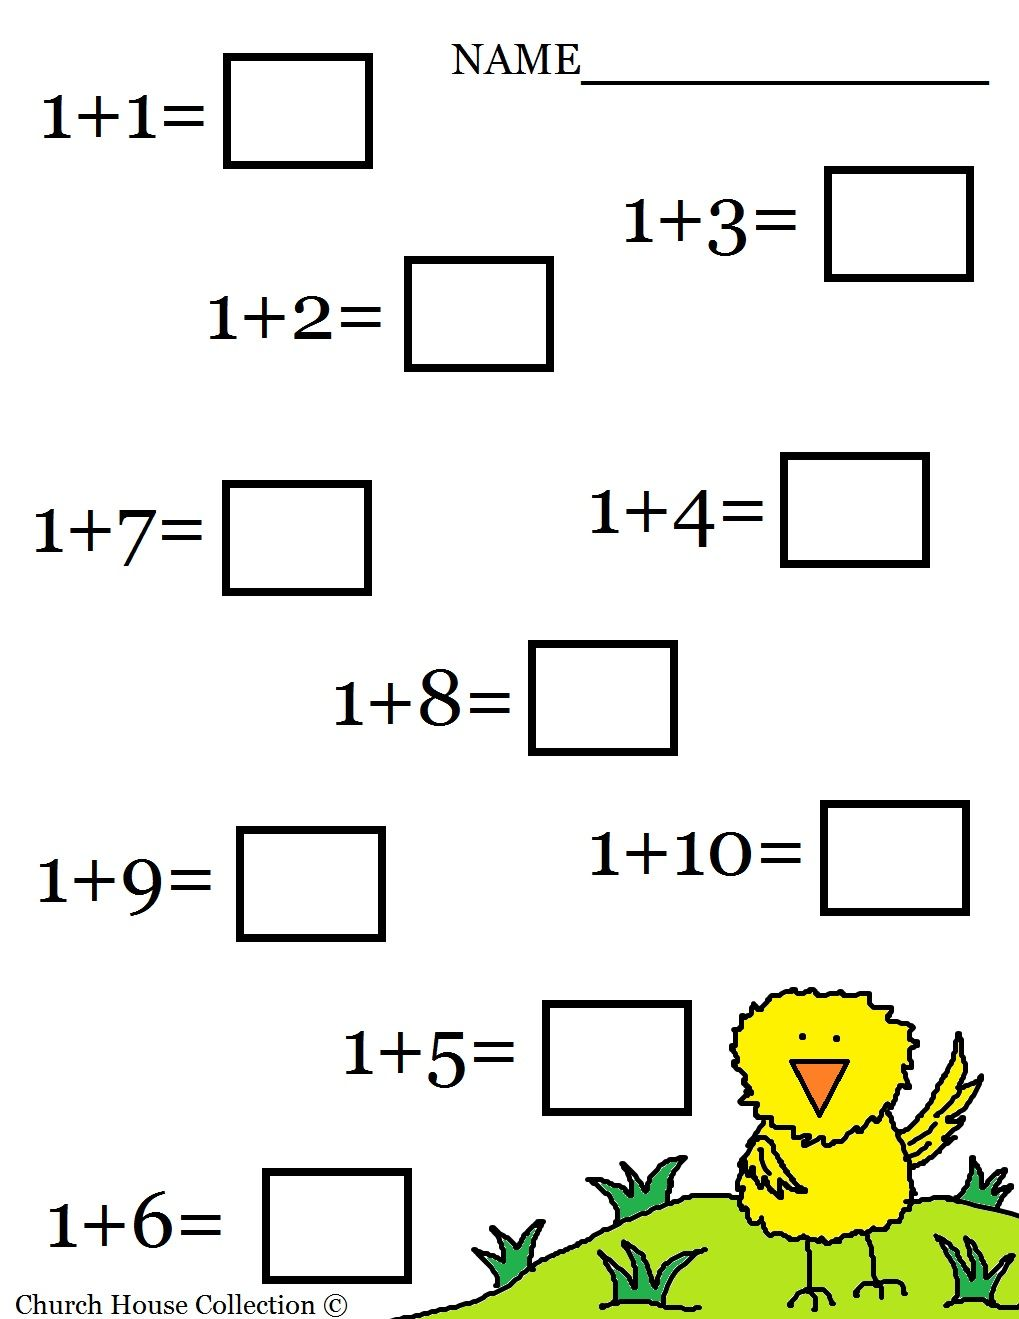 Aldiablosus  Surprising  Images About Worksheets  Math On Pinterest  Math Sheets  With Engaging  Images About Worksheets  Math On Pinterest  Math Sheets Math Worksheets For Kindergarten And Simple Addition With Alluring How To Analyze Poetry Worksheet Also Vocabulary Using Context Clues Worksheets In Addition Free Printable Alphabet Dot To Dot Worksheets And Homophones And Homographs Worksheet As Well As This And These Worksheets Additionally Bible Trivia Worksheets From Pinterestcom With Aldiablosus  Engaging  Images About Worksheets  Math On Pinterest  Math Sheets  With Alluring  Images About Worksheets  Math On Pinterest  Math Sheets Math Worksheets For Kindergarten And Simple Addition And Surprising How To Analyze Poetry Worksheet Also Vocabulary Using Context Clues Worksheets In Addition Free Printable Alphabet Dot To Dot Worksheets From Pinterestcom